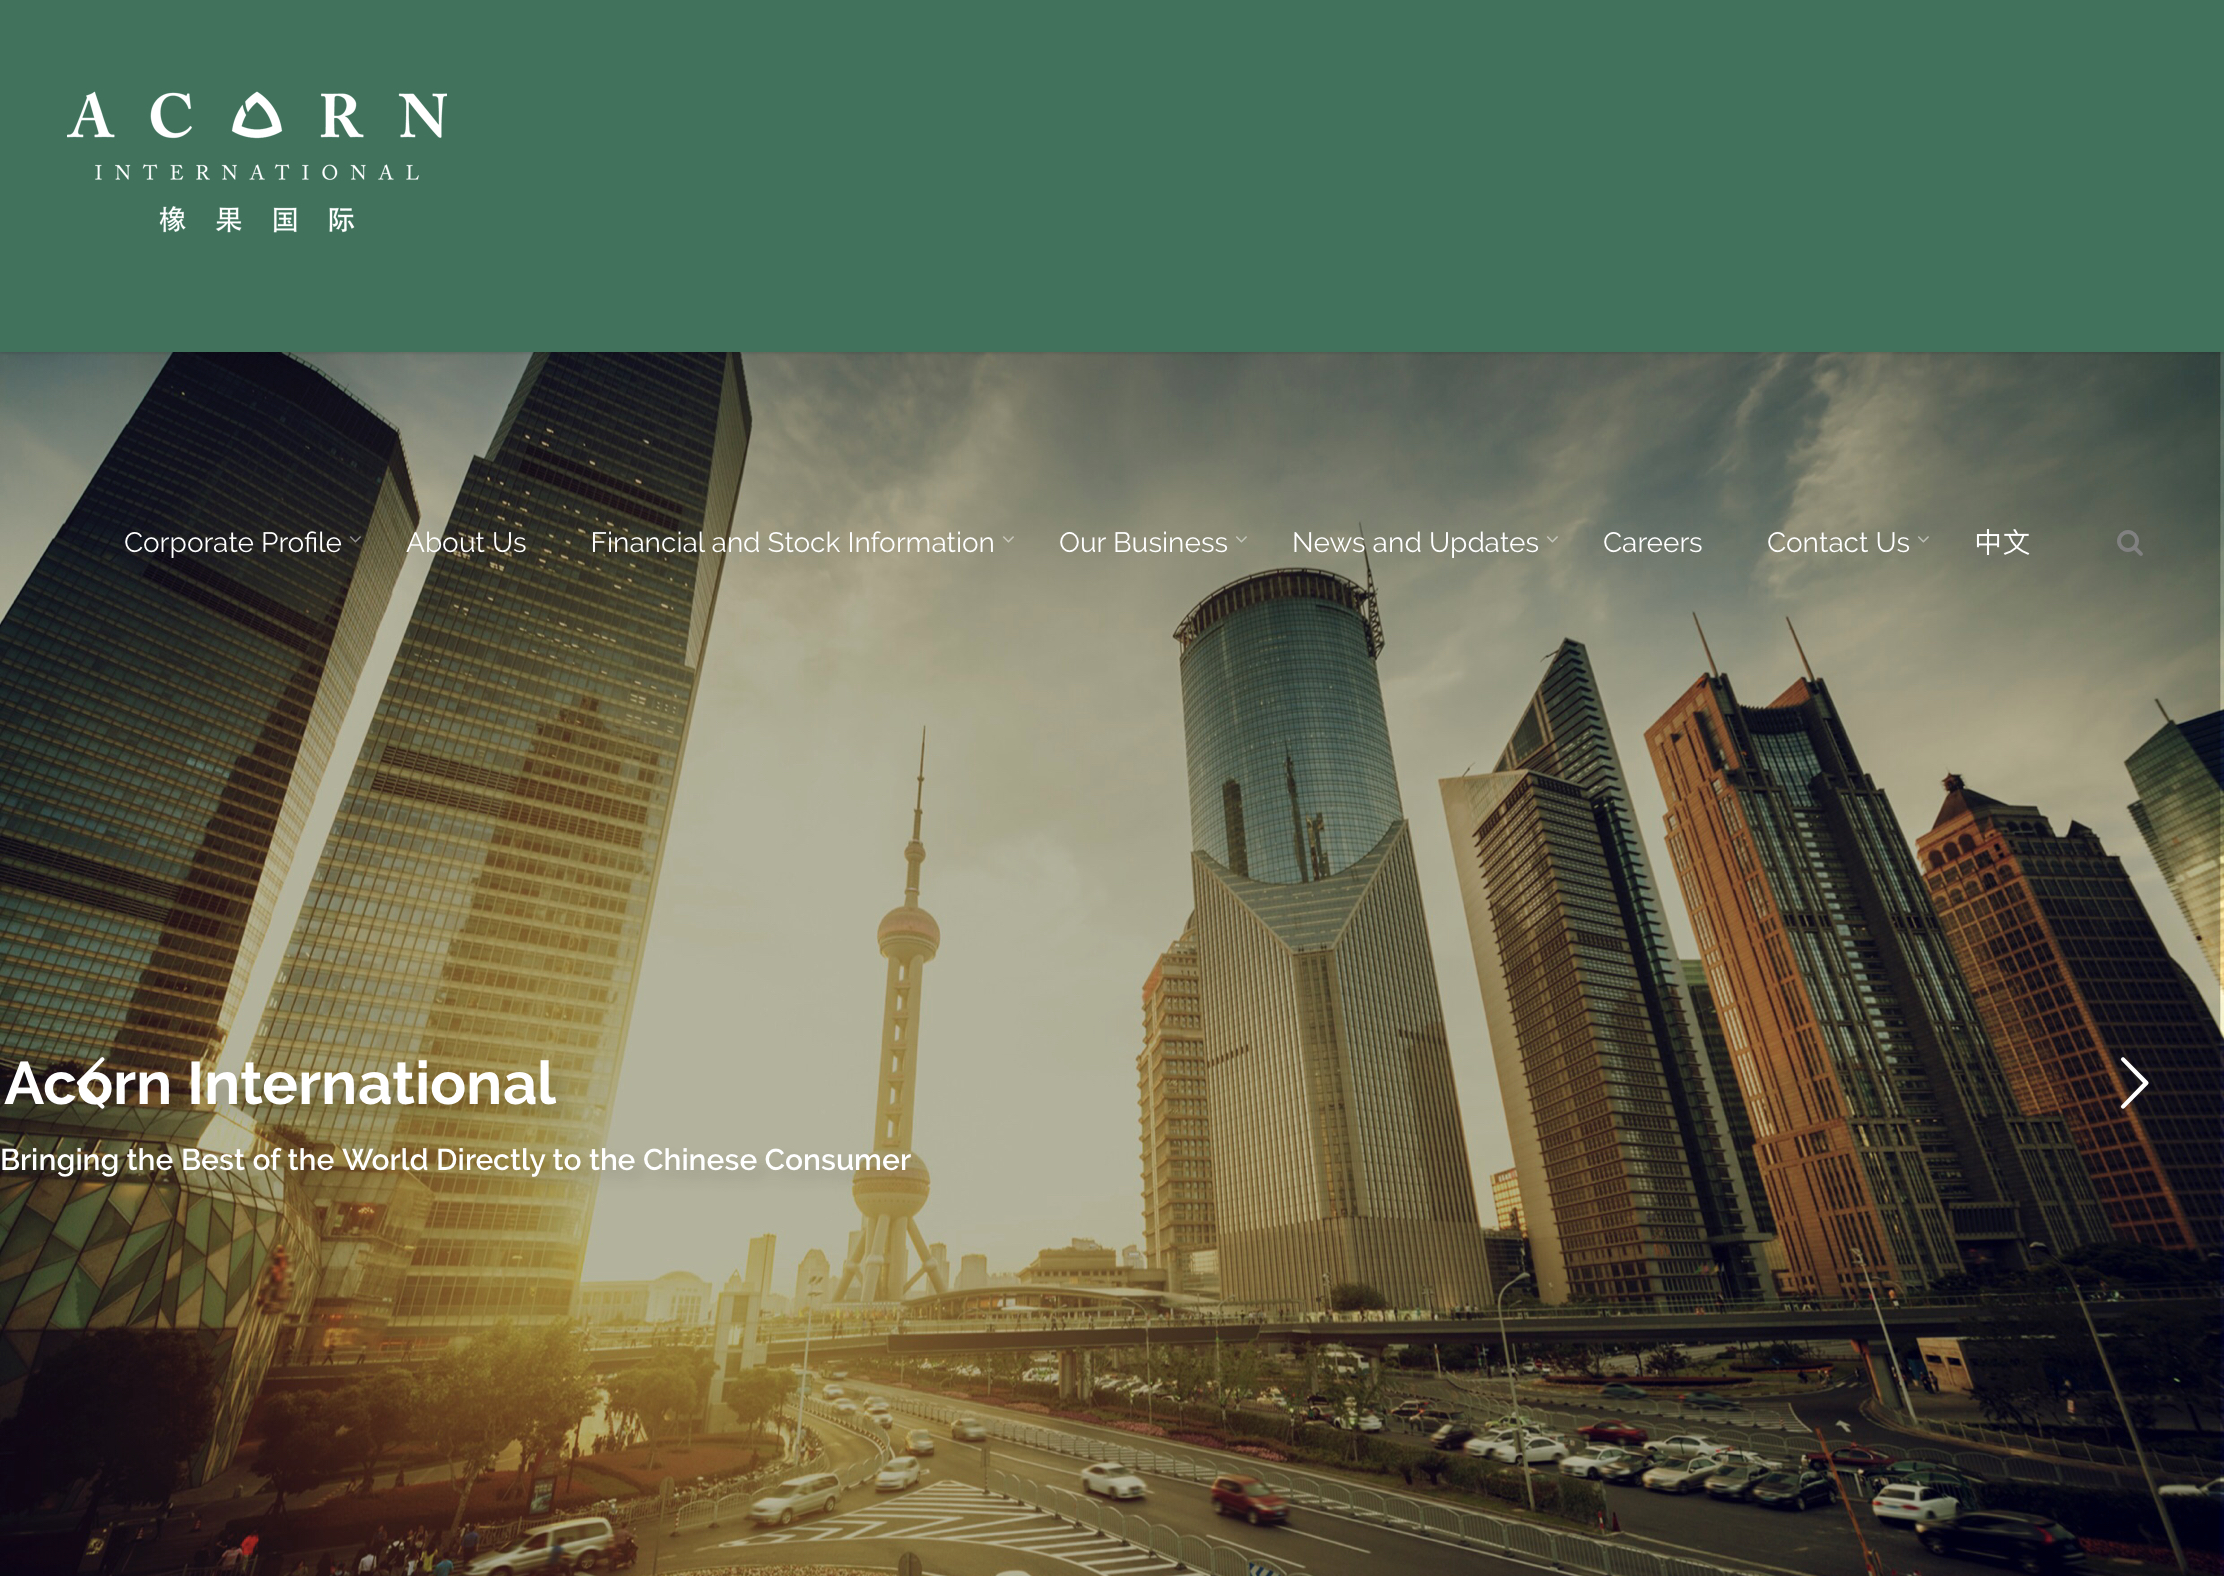 Acorn International Enjoys Strong Business in Third Quarter, Expects Continuing Profitability